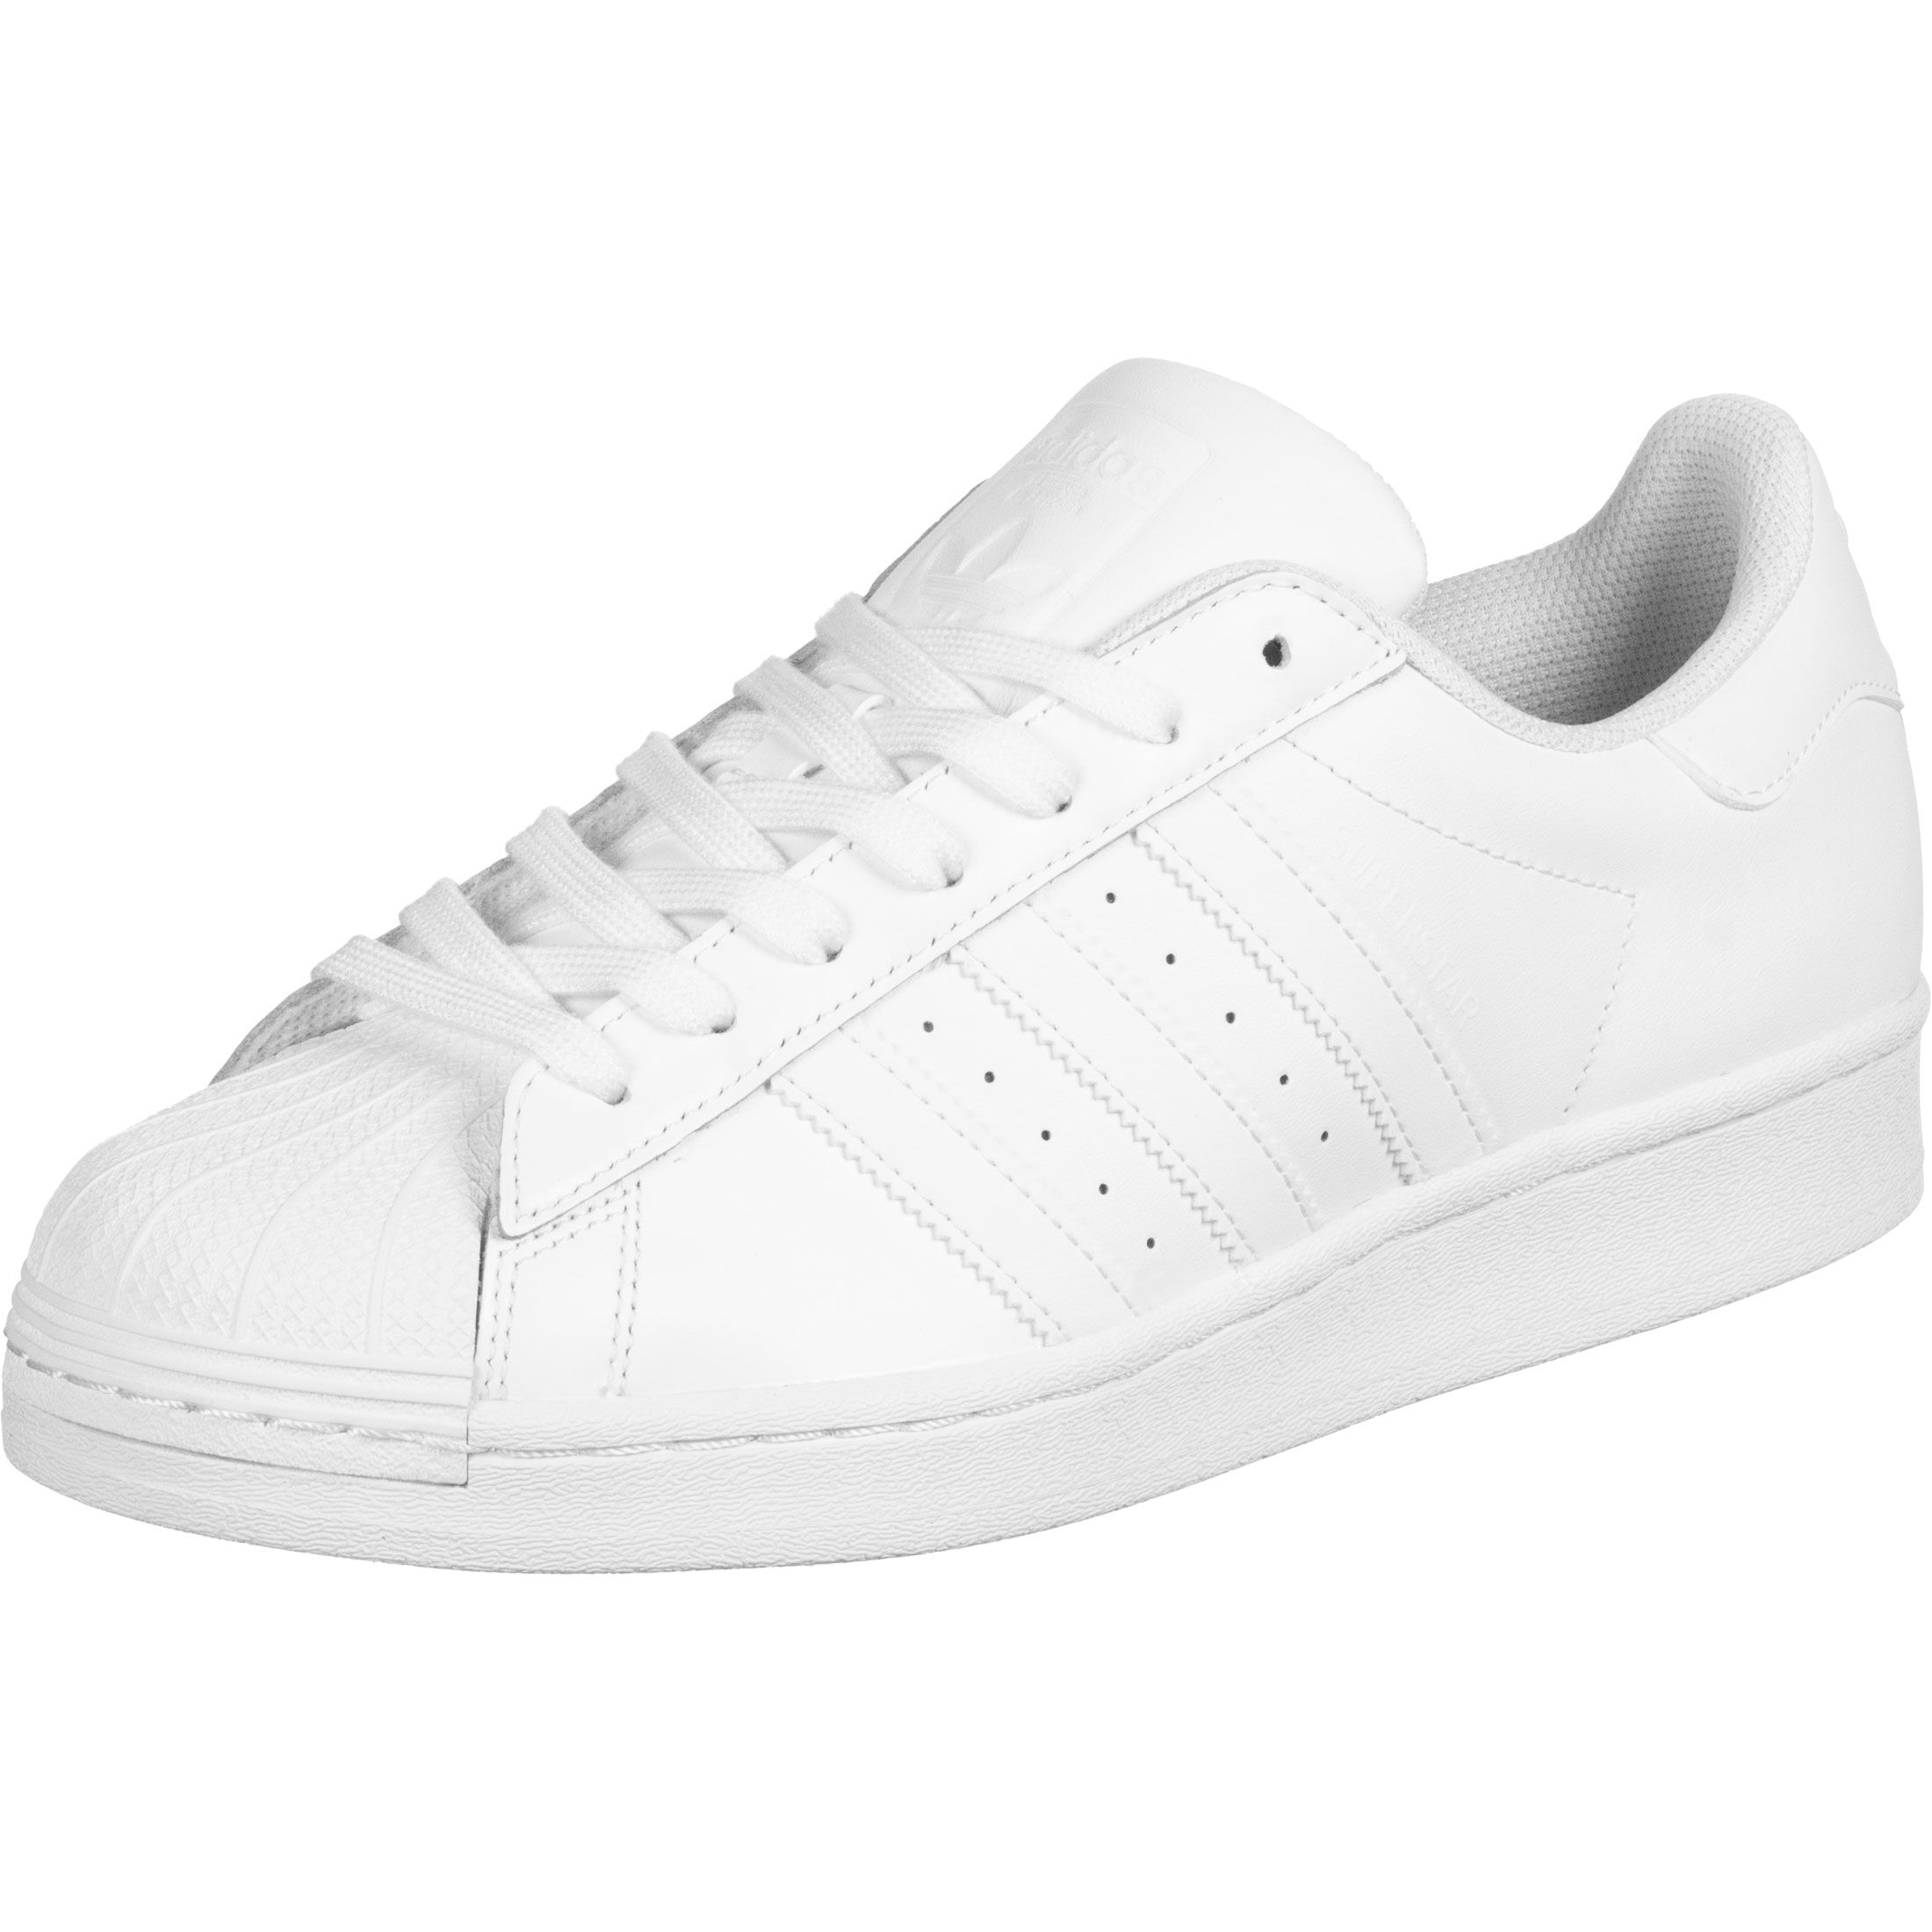 Search results for 'adidas superstar'